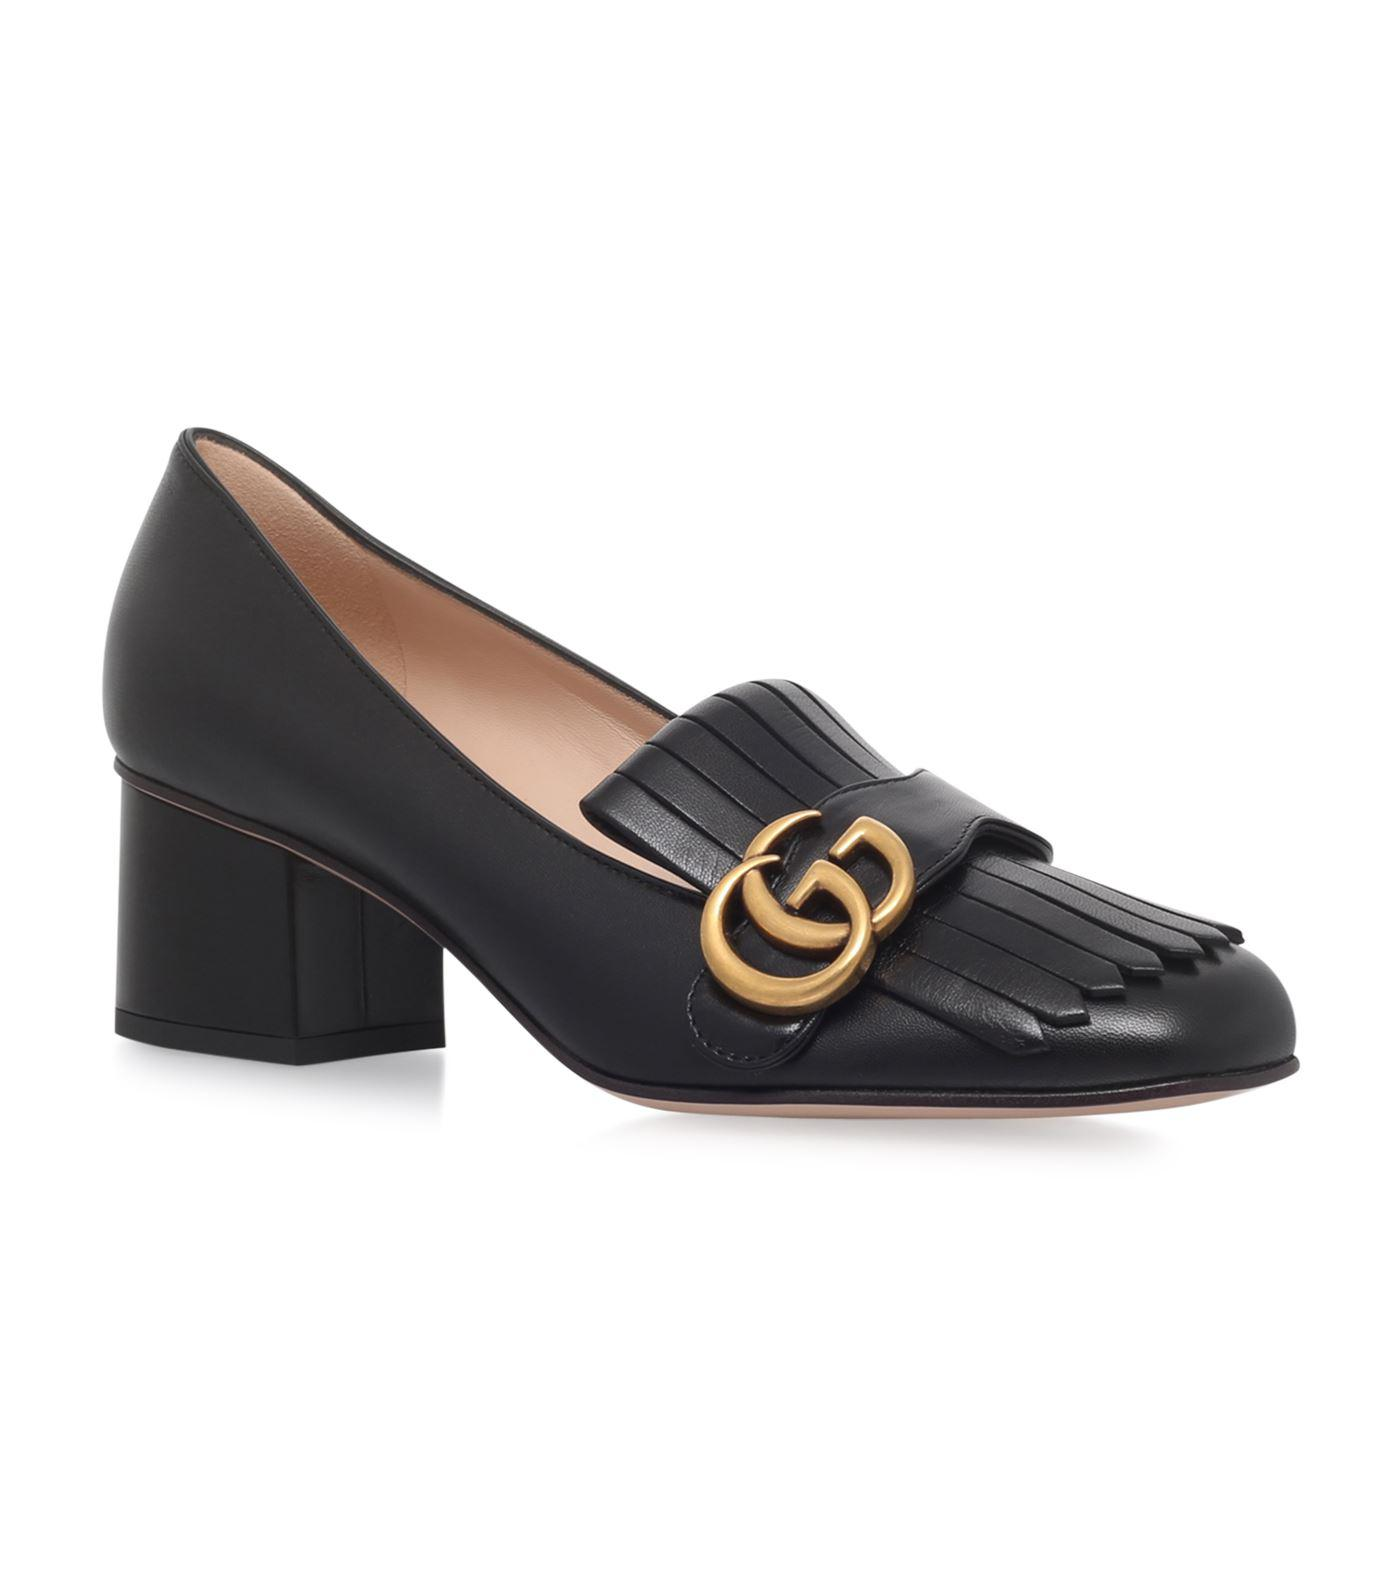 75249a64042 Gucci Marmont Fringed Loafers 55 in Black - Lyst